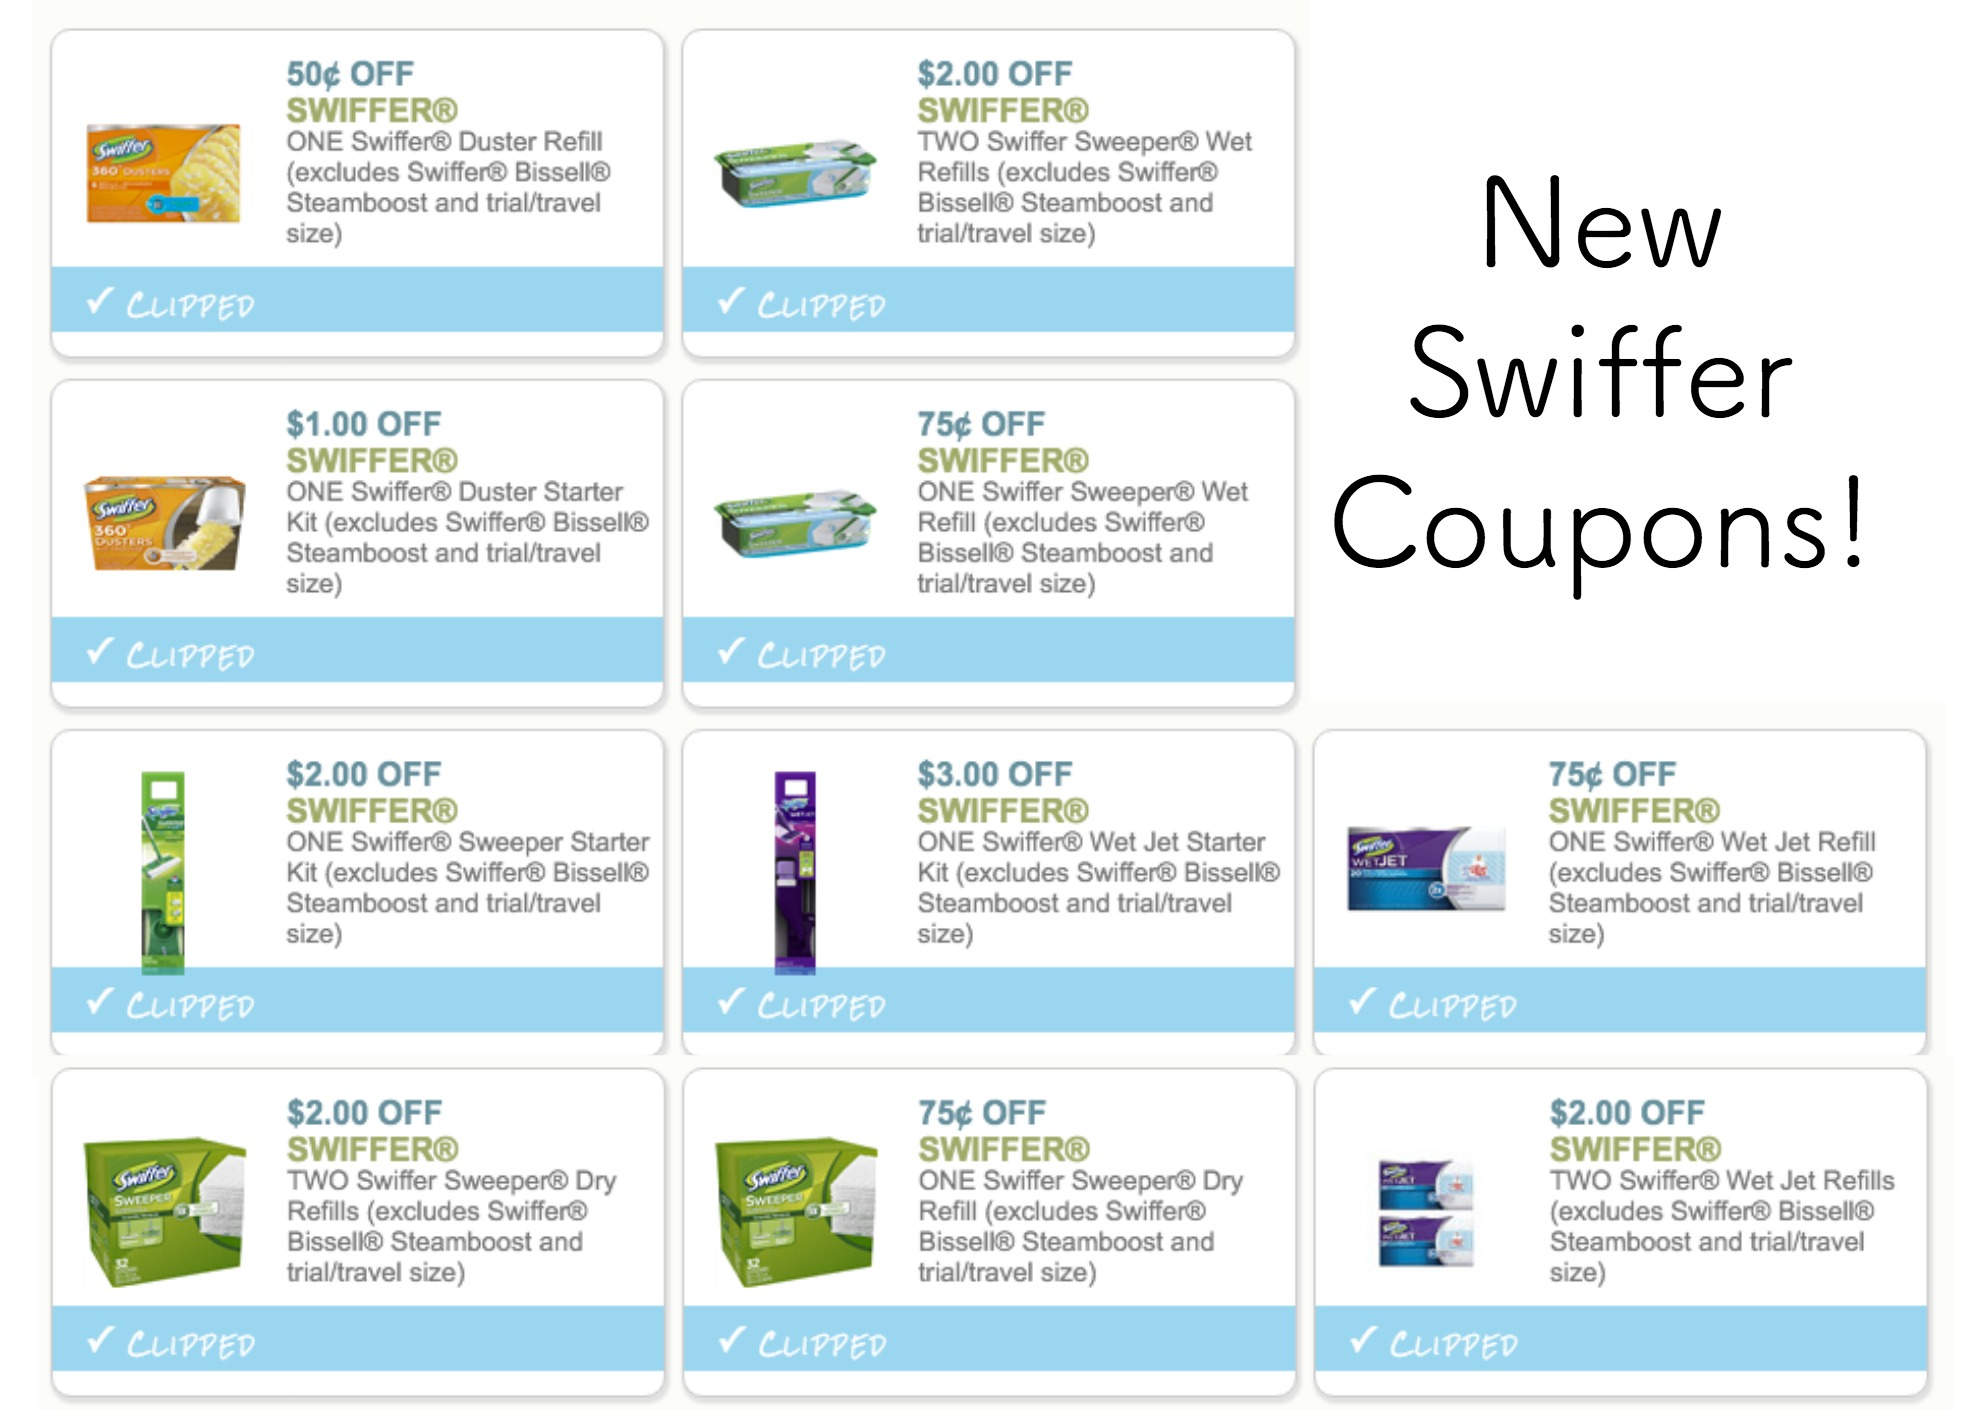 Like Swiffer coupons? Try these...